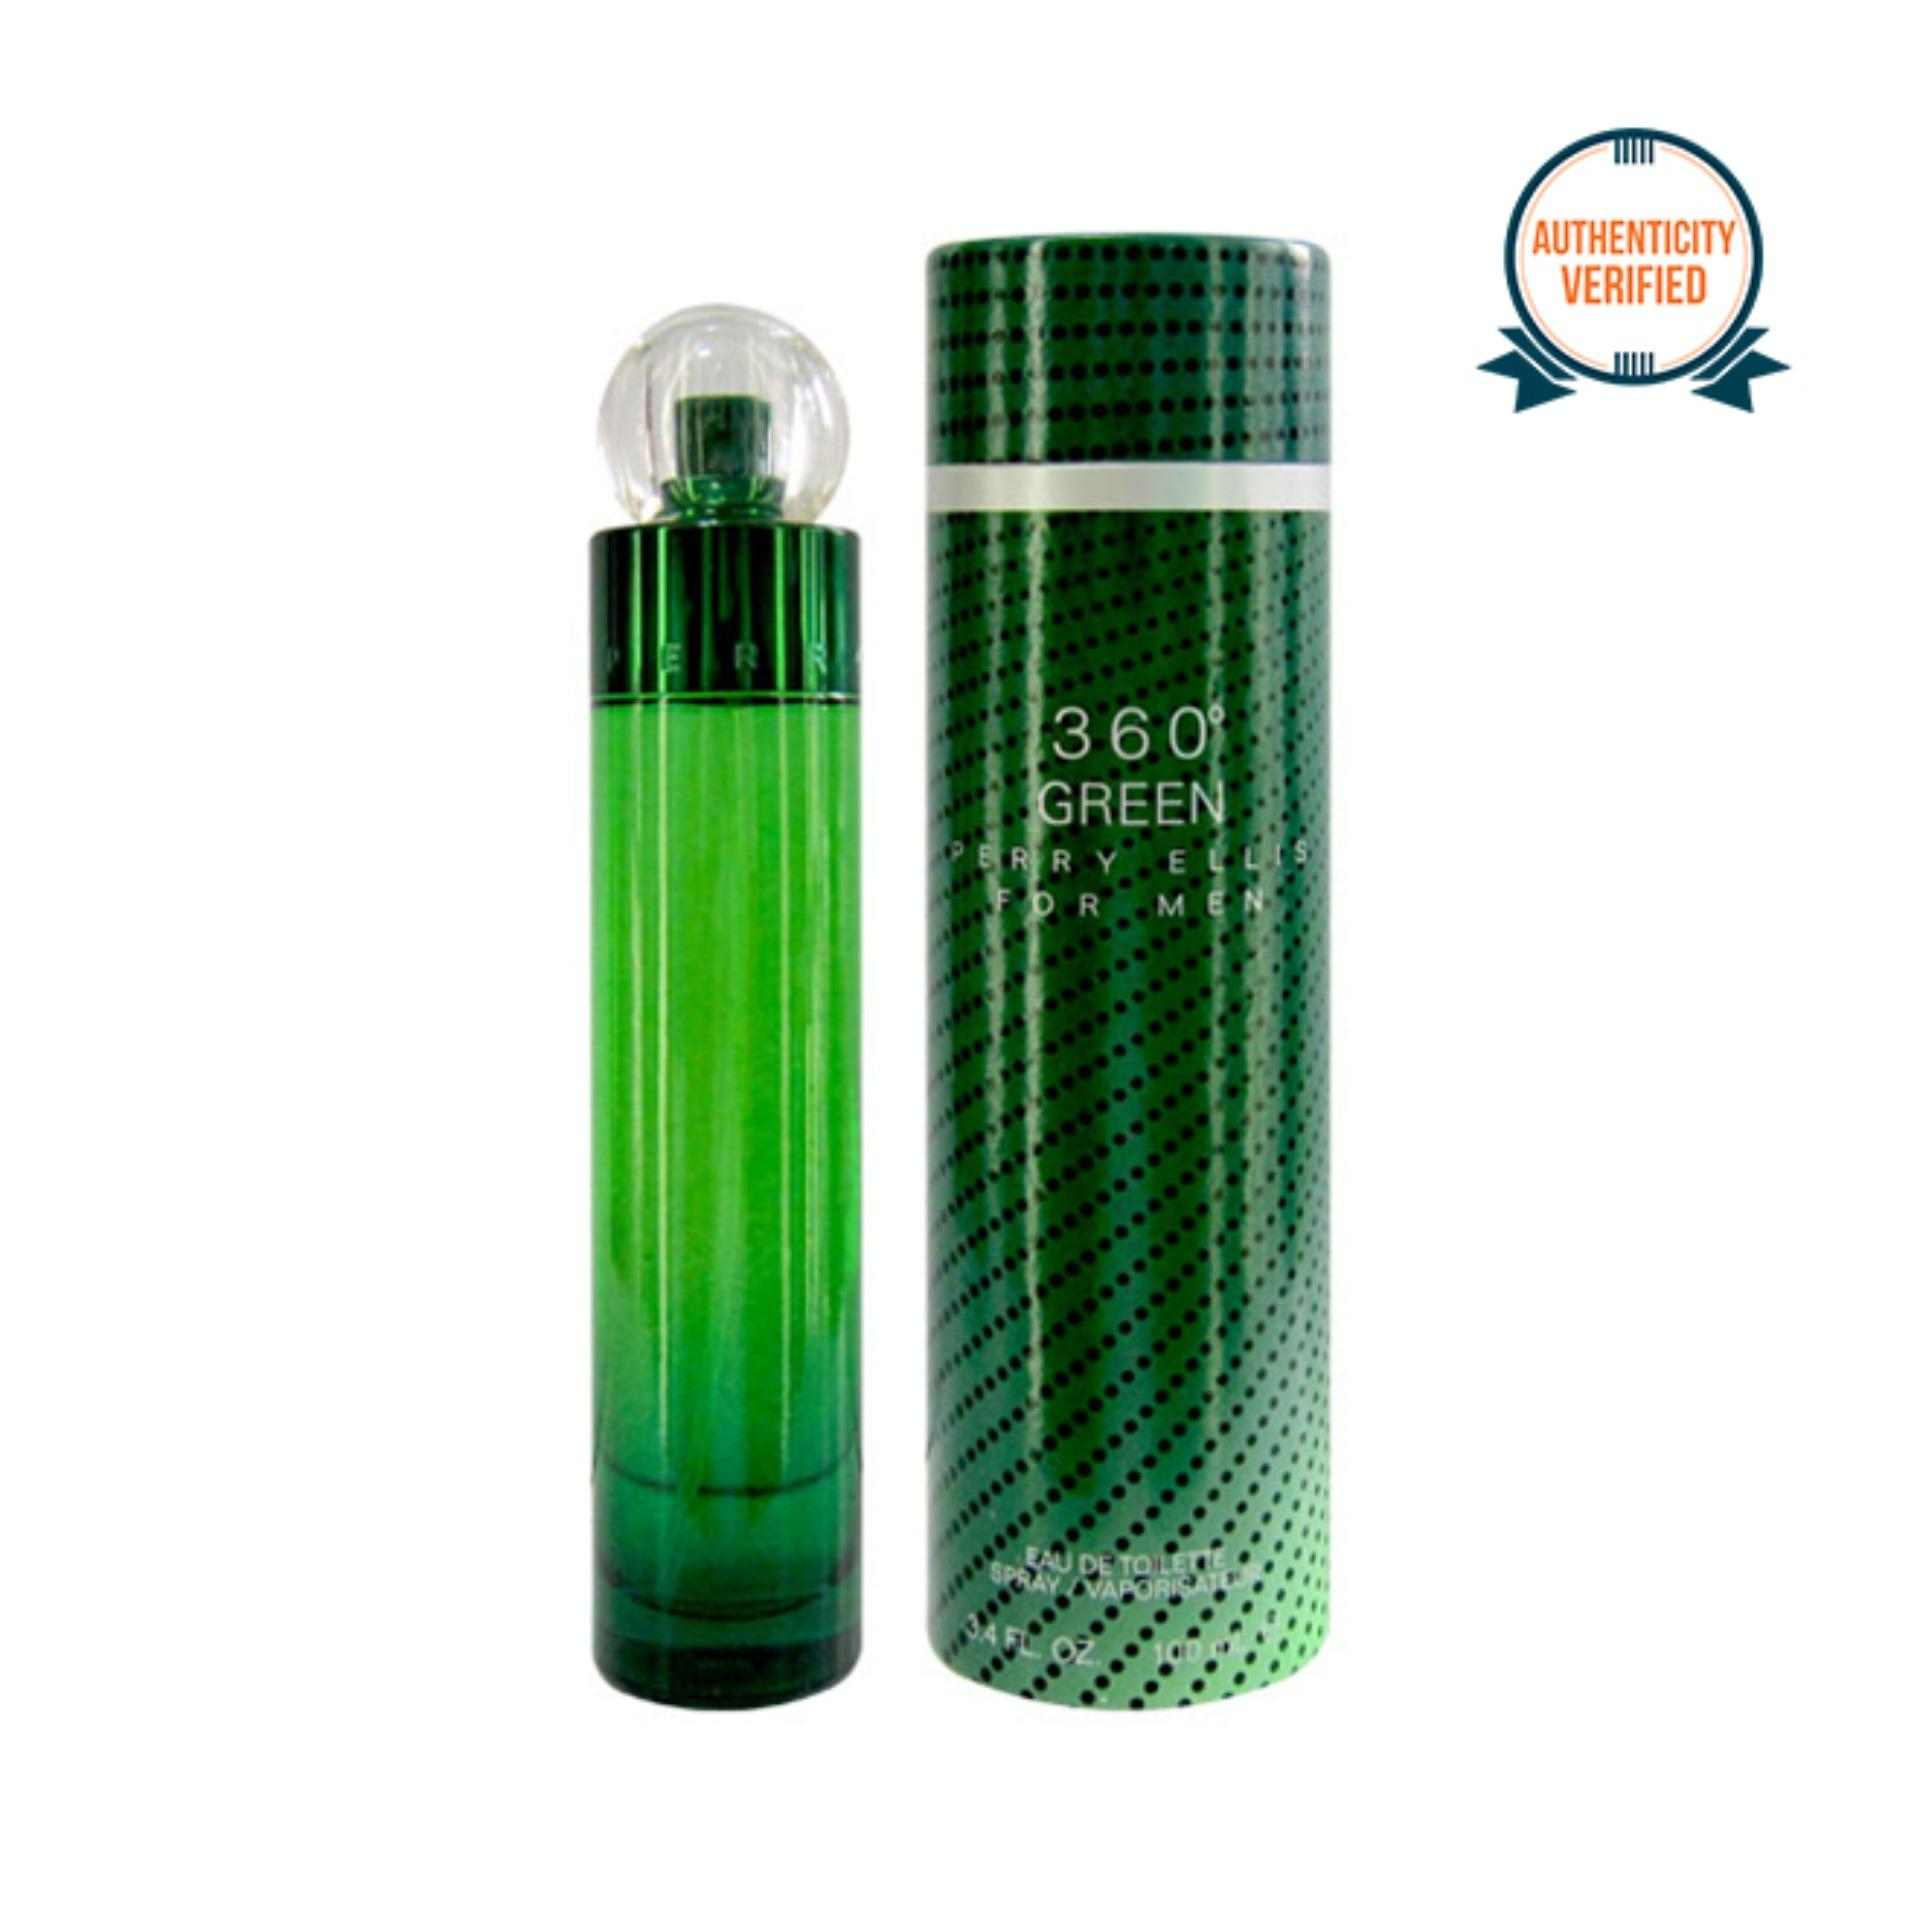 Perry Ellis 360 Green Eau de Toilette for Men 100ml